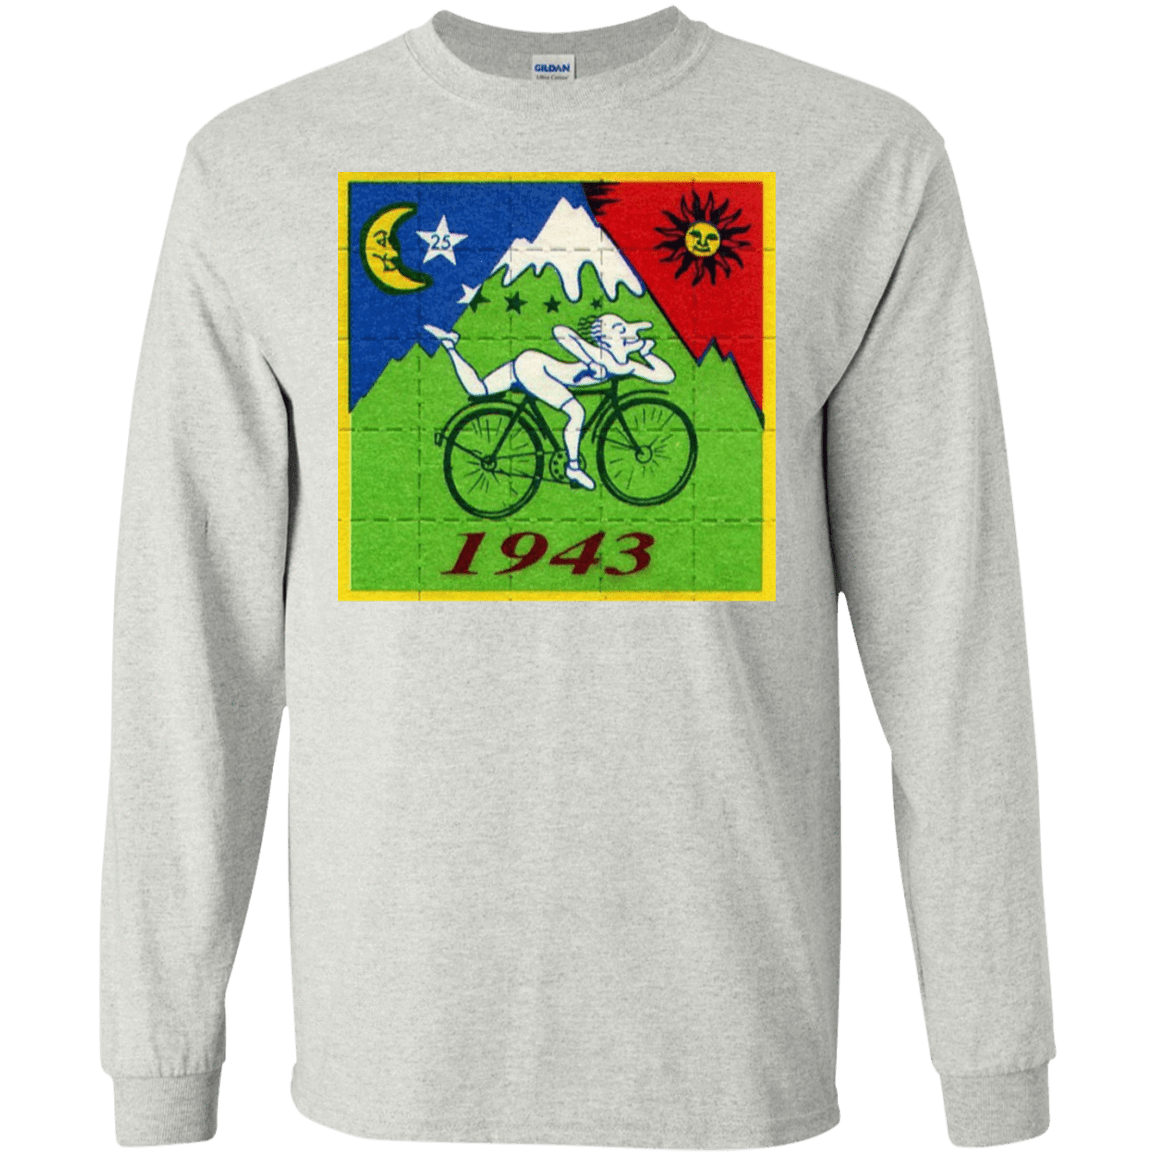 Bicycle Day 30-2112-73565657-10754 - Tee Ript